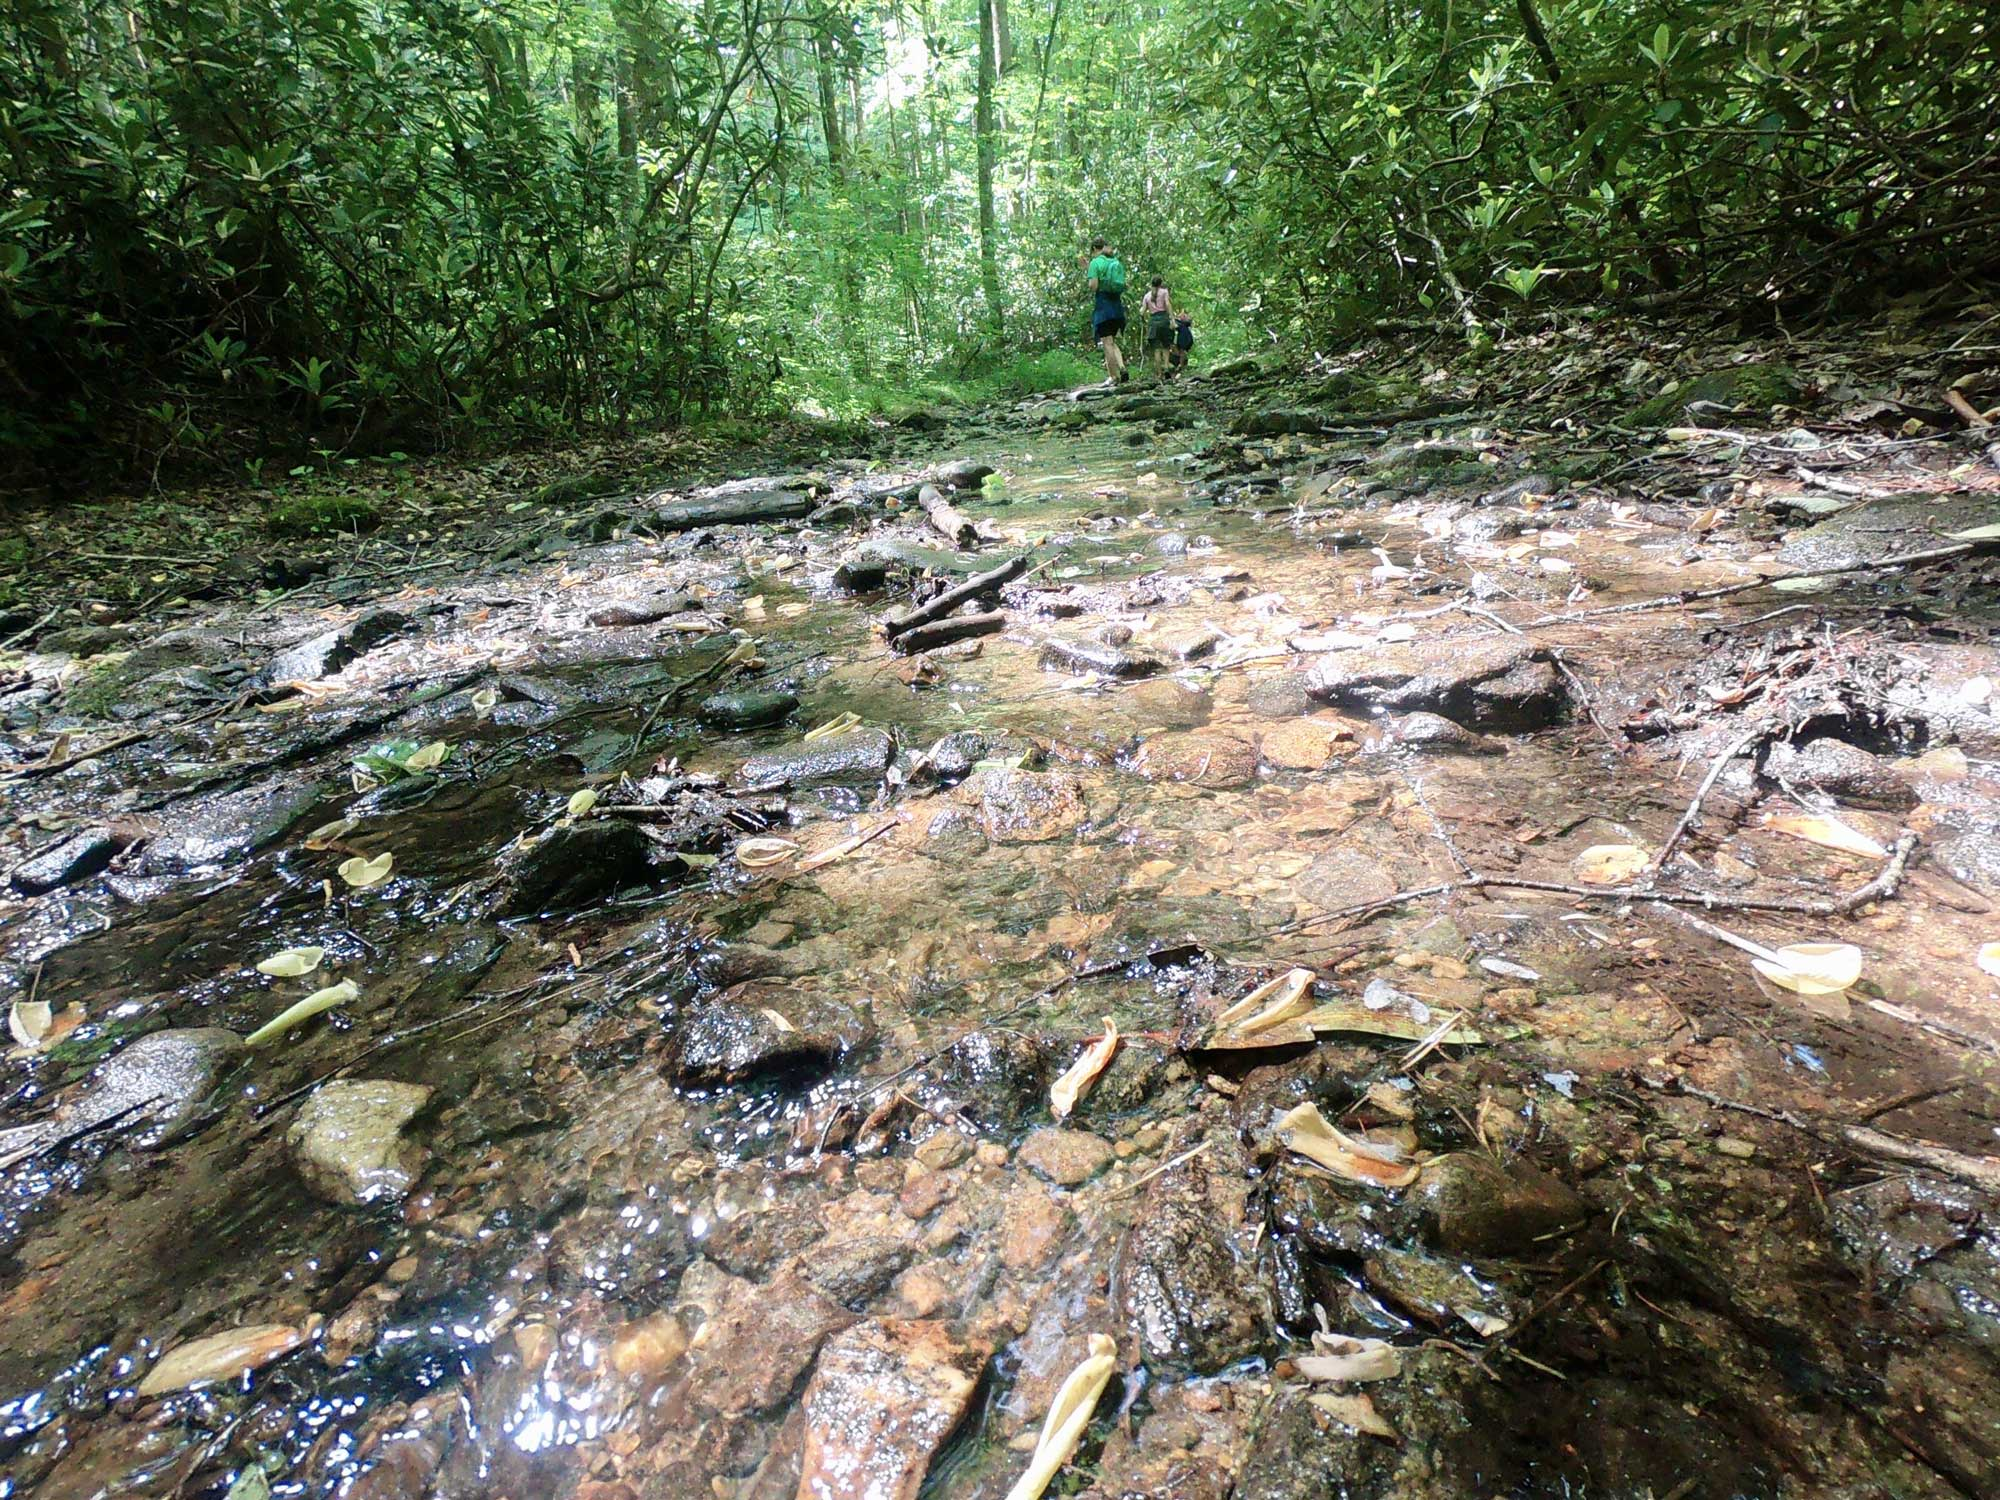 Kids hiking on the wet trail of the Kimsey Creek Trail at Standing Indian Campground, North Carolina